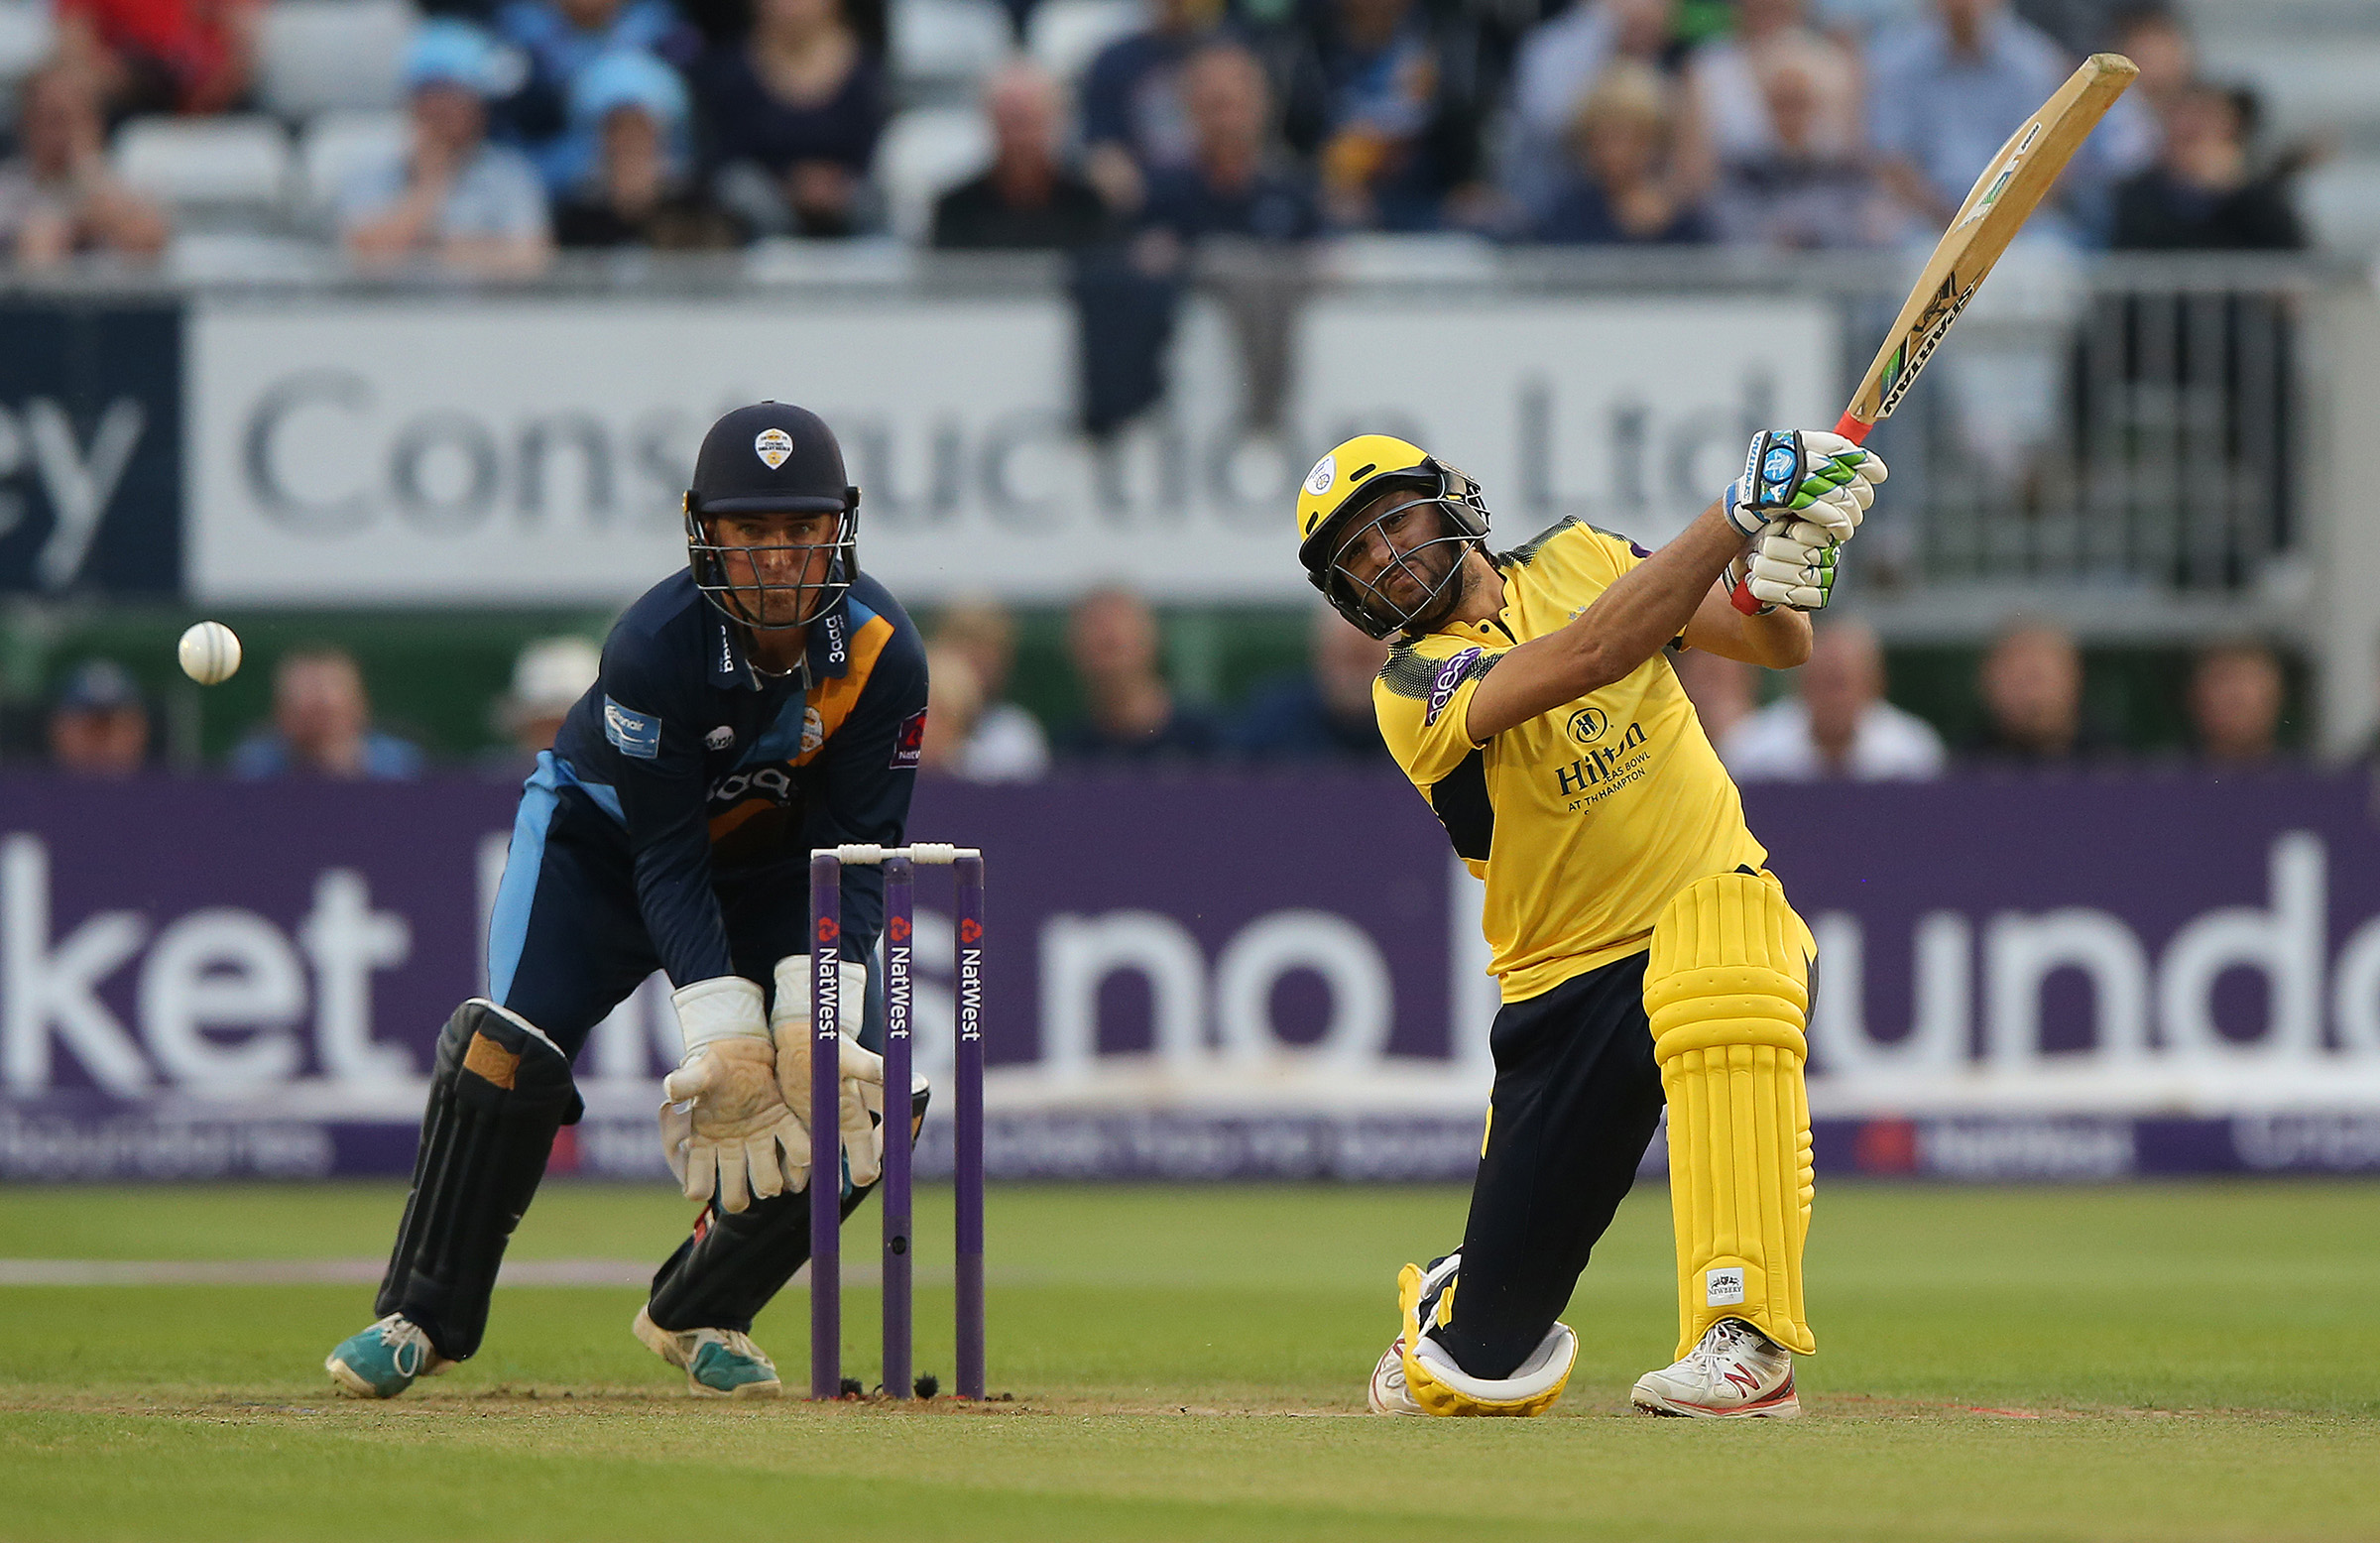 Afridi cleared the rope seven times at the County Ground // Getty